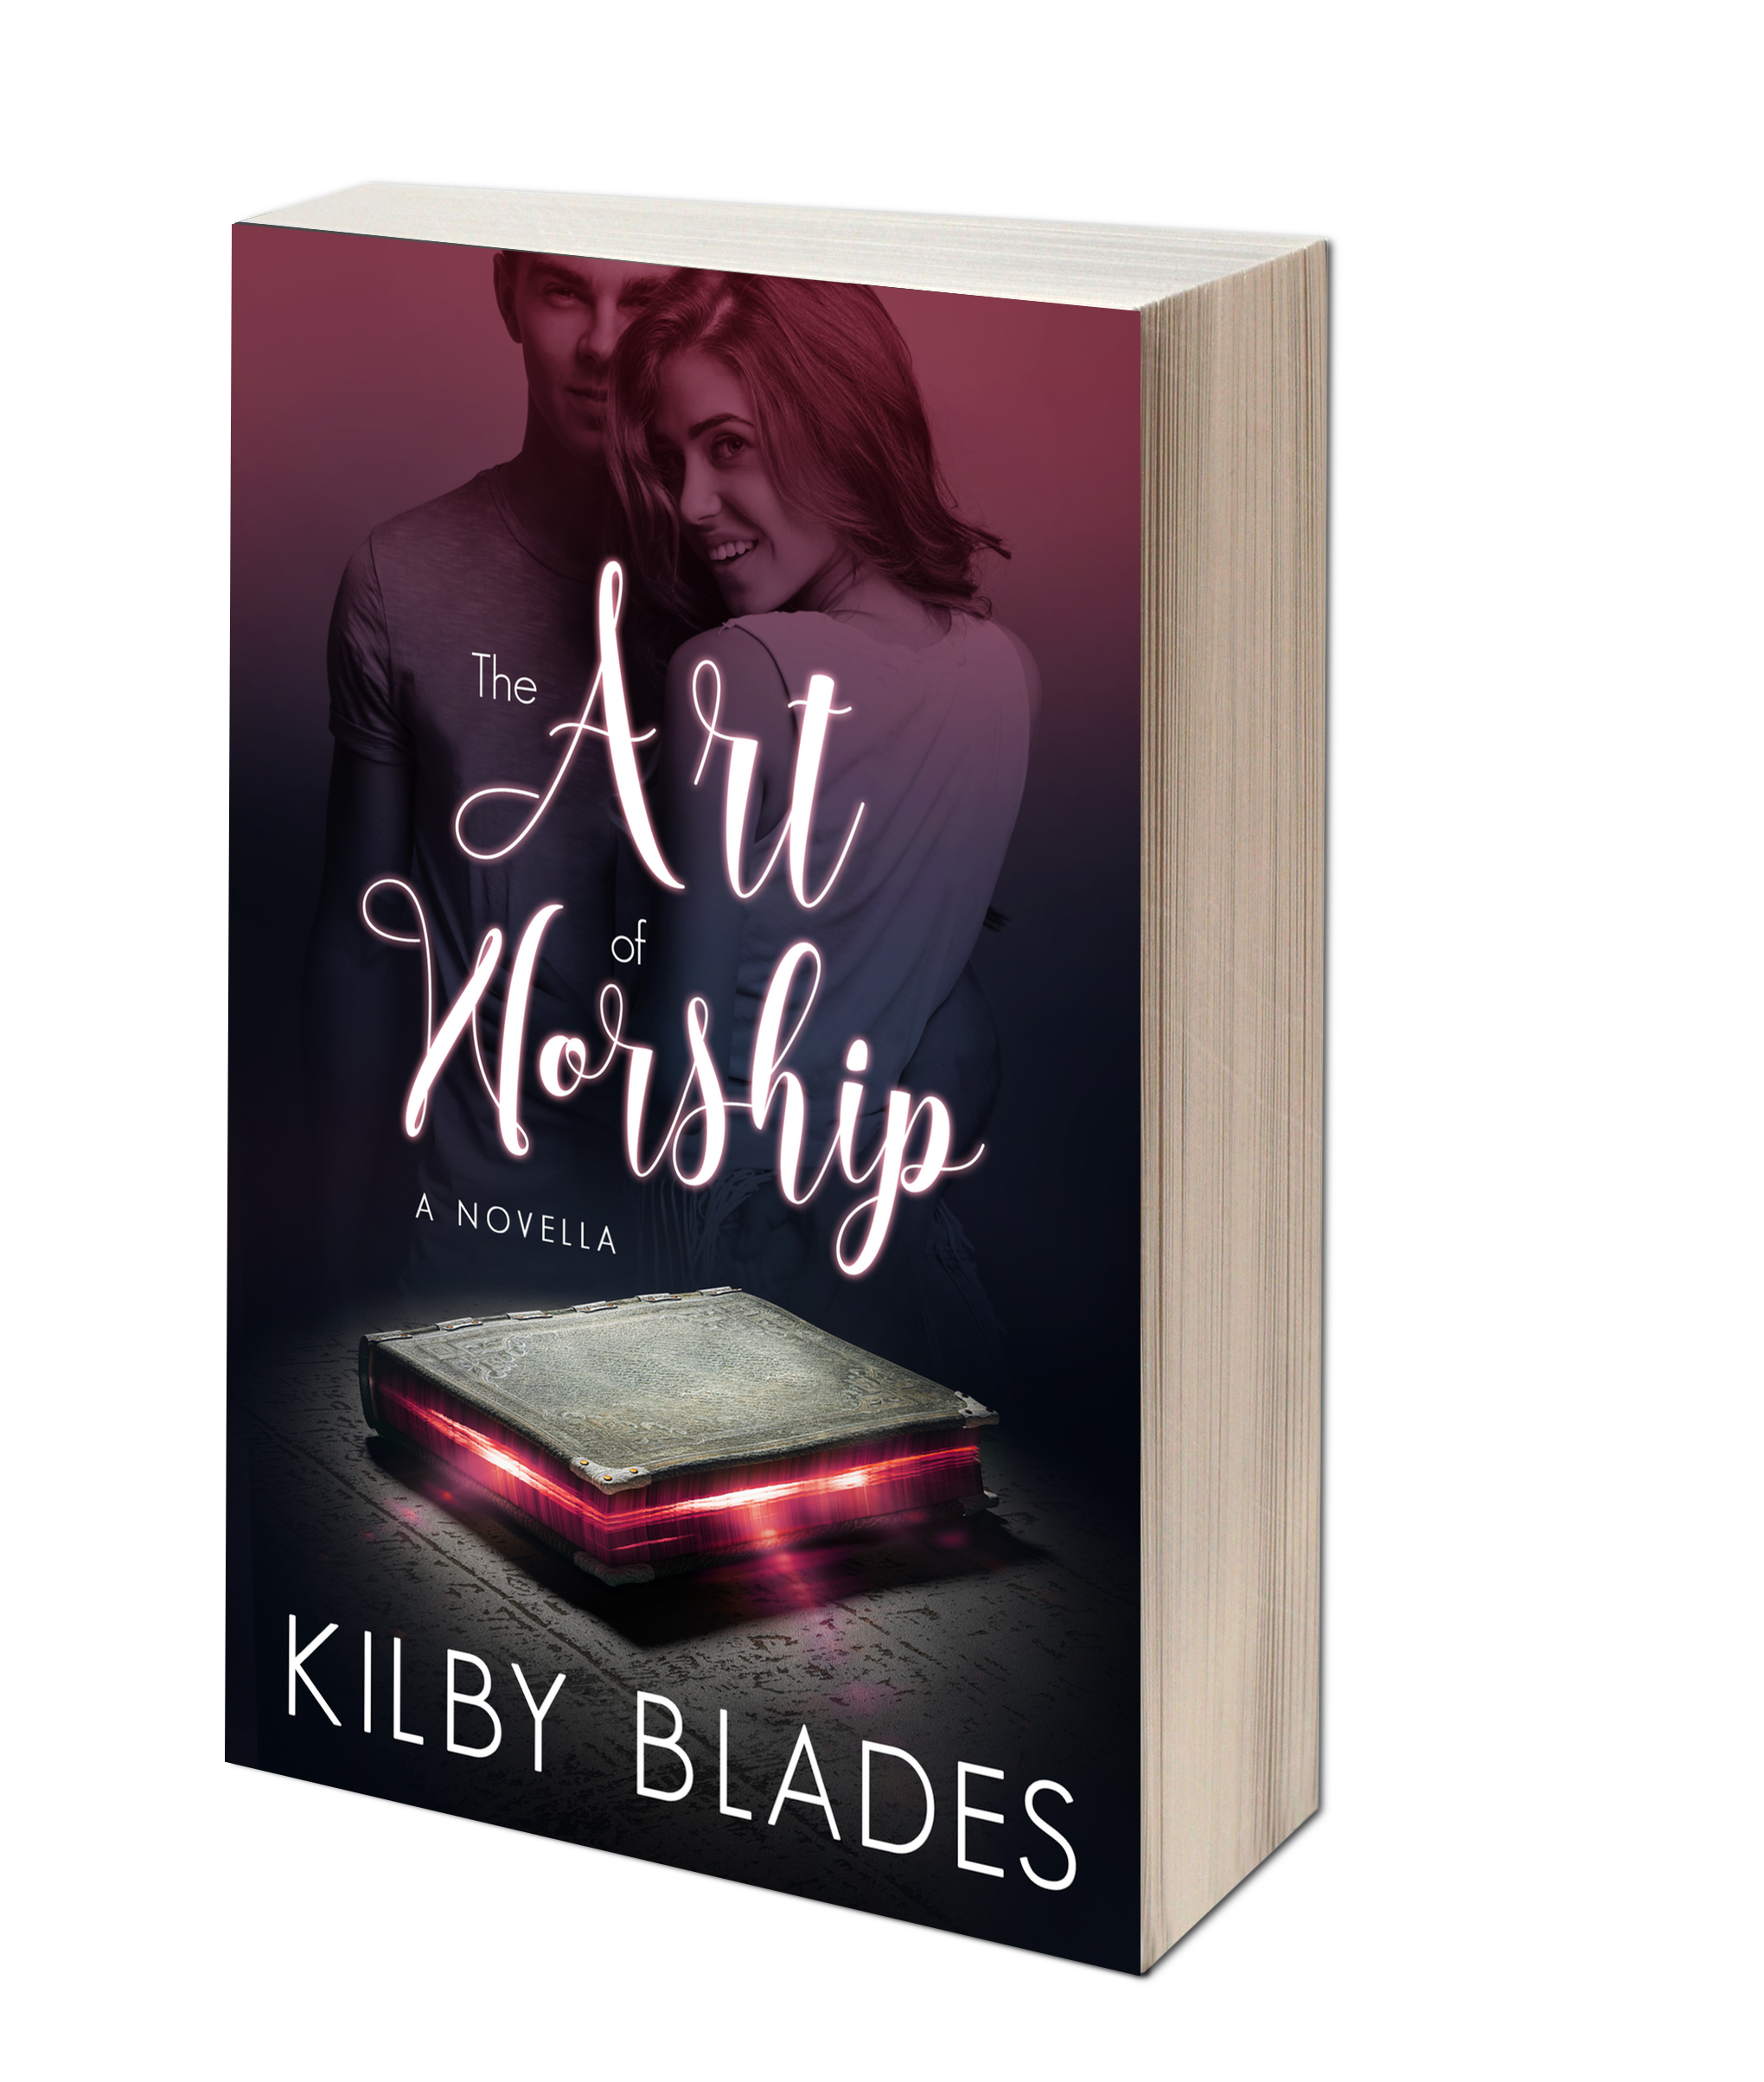 Kilby Blades - The Art of Worship 3D with Pages Cover - 11-27-17.png